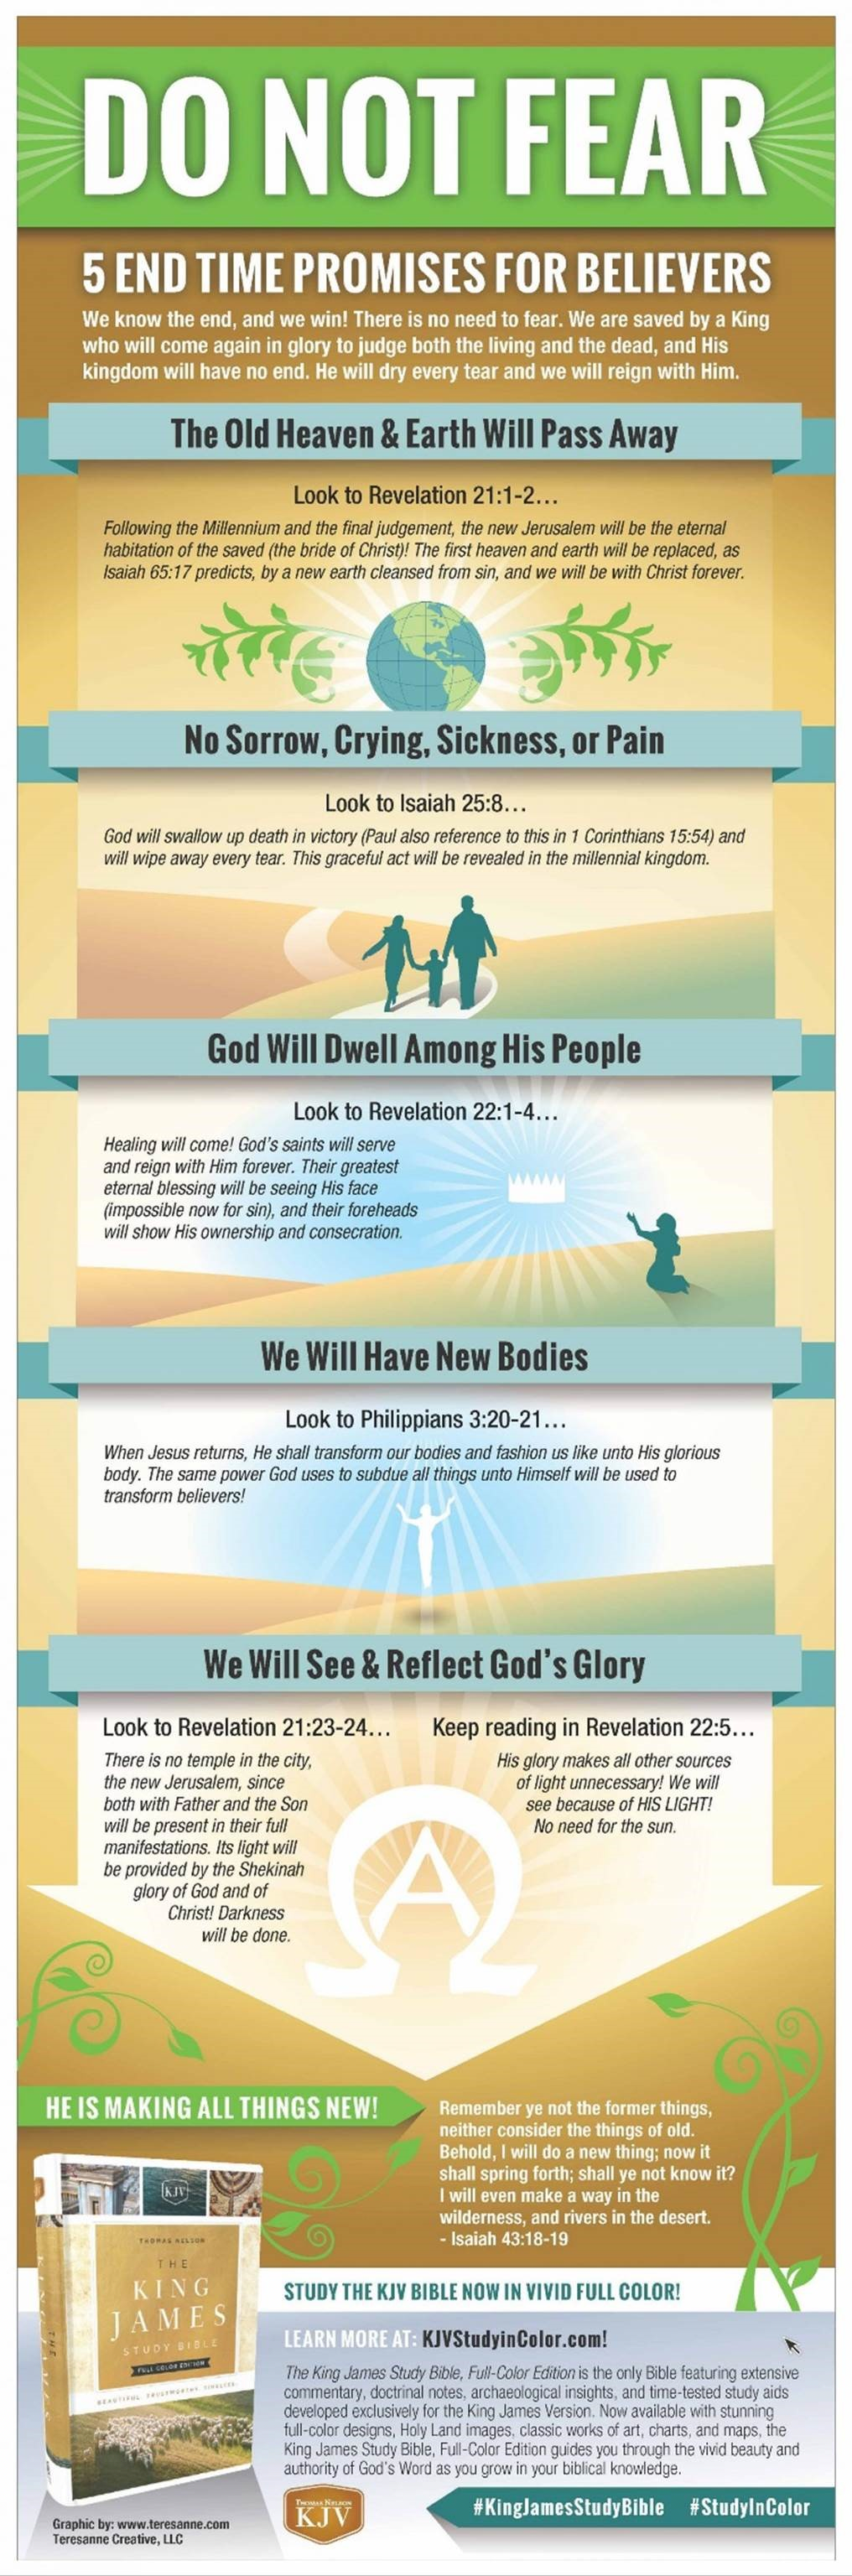 Click to enlarge this Infographic based on The King James Study Bible, Full Color Edition